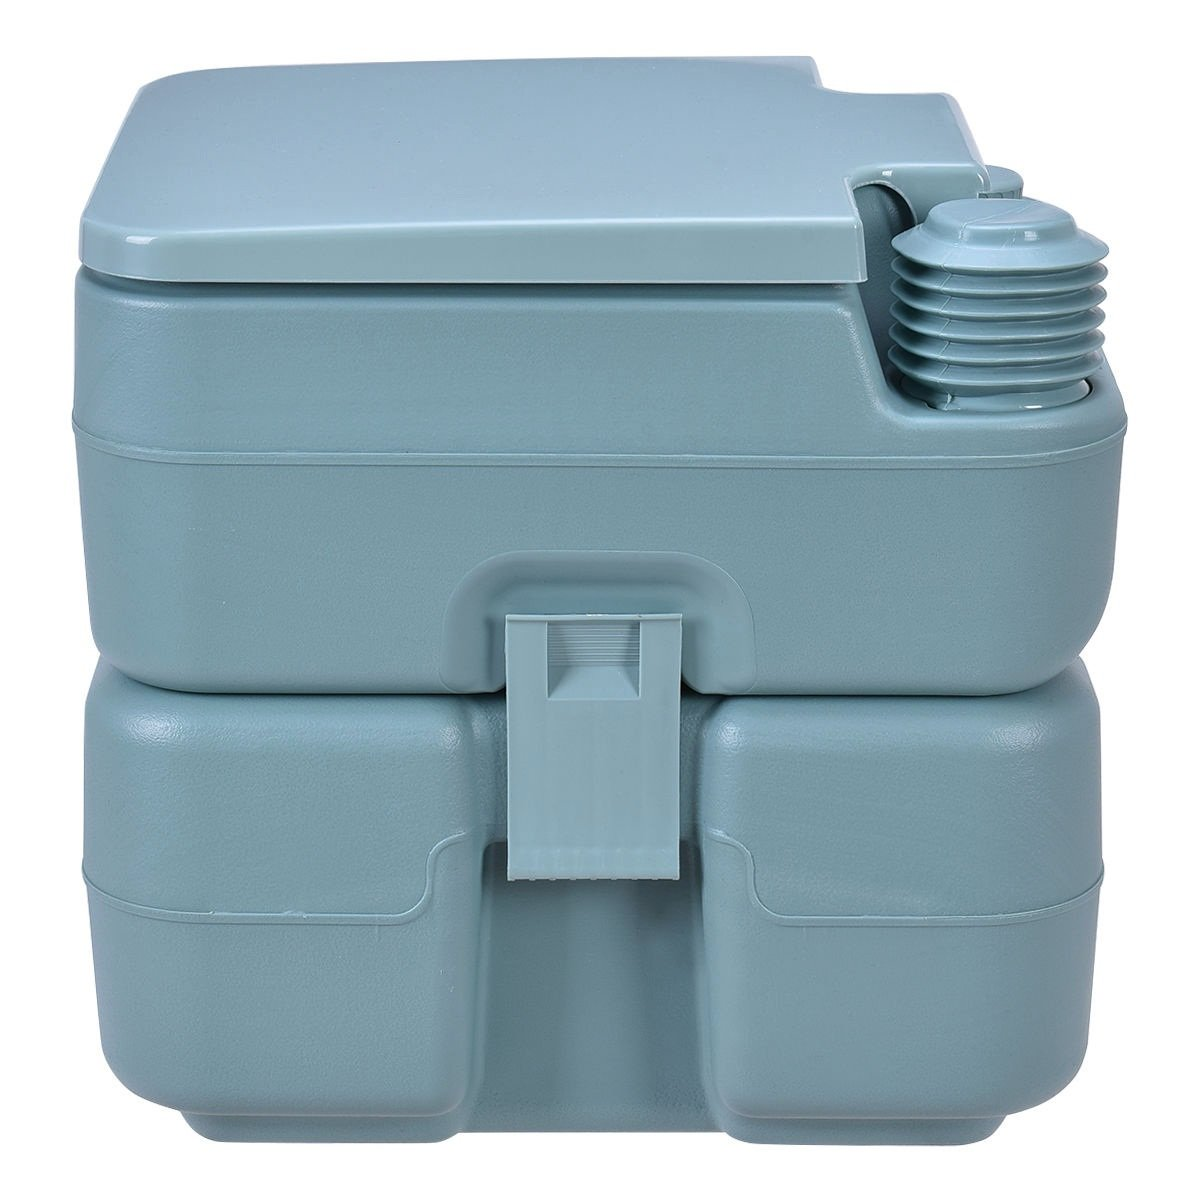 20L Easy Carry & Clean Portable Travel Flush Toilet Greenish Gray Potty by FDInspiration (Image #3)